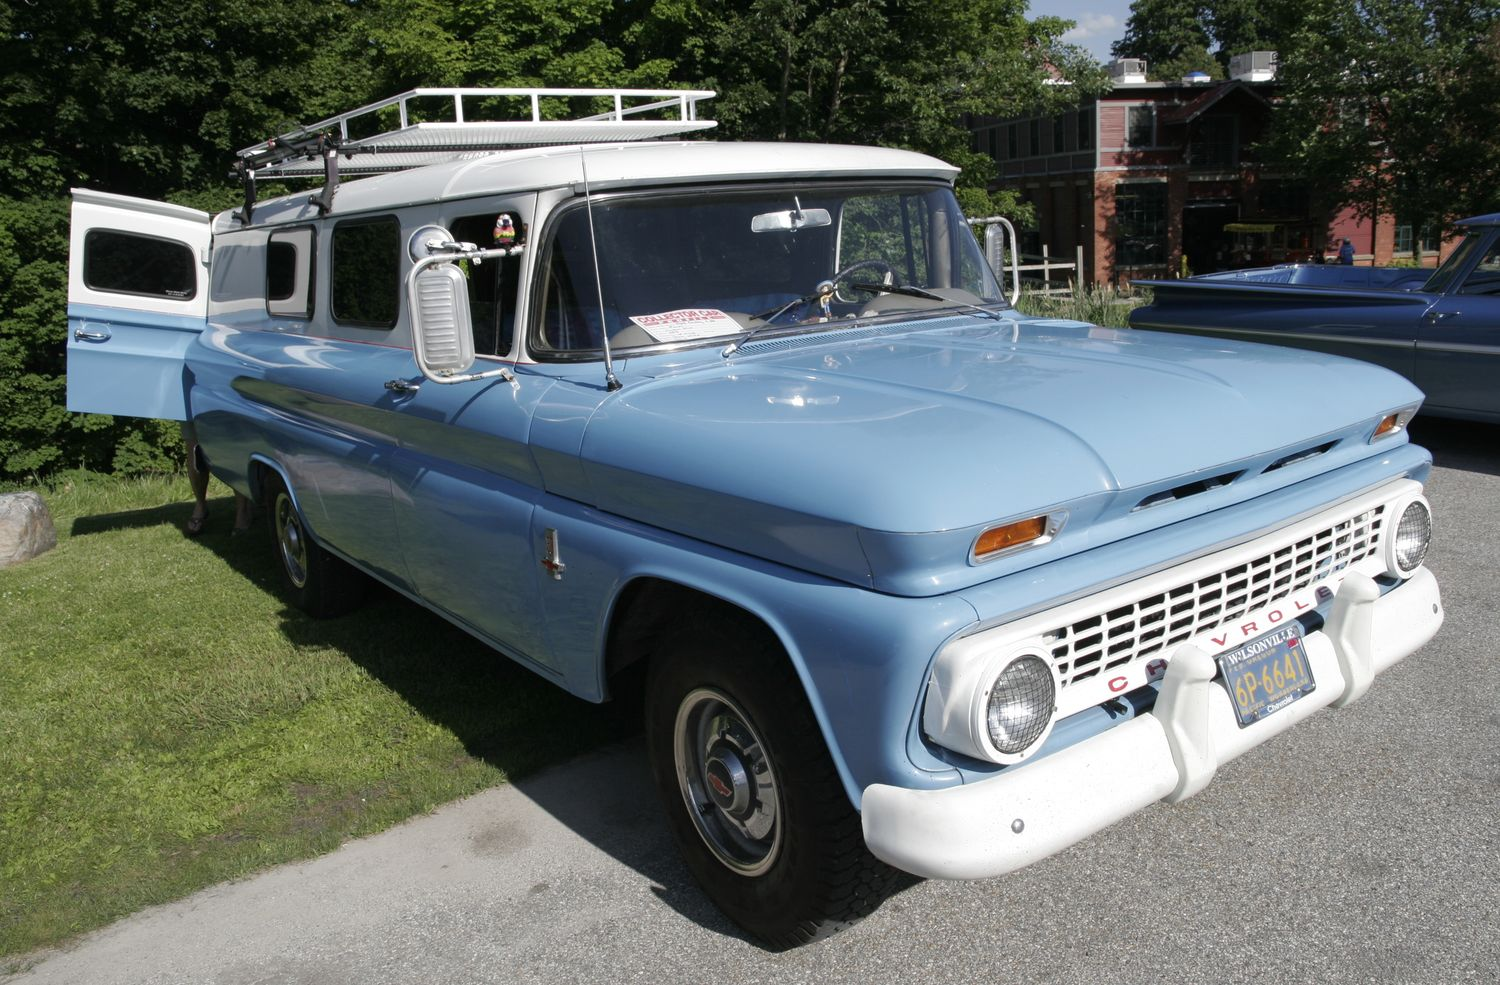 All Chevy chevy apache 4×4 : All Chevy » 1962 Chevy Apache For Sale - Old Chevy Photos ...